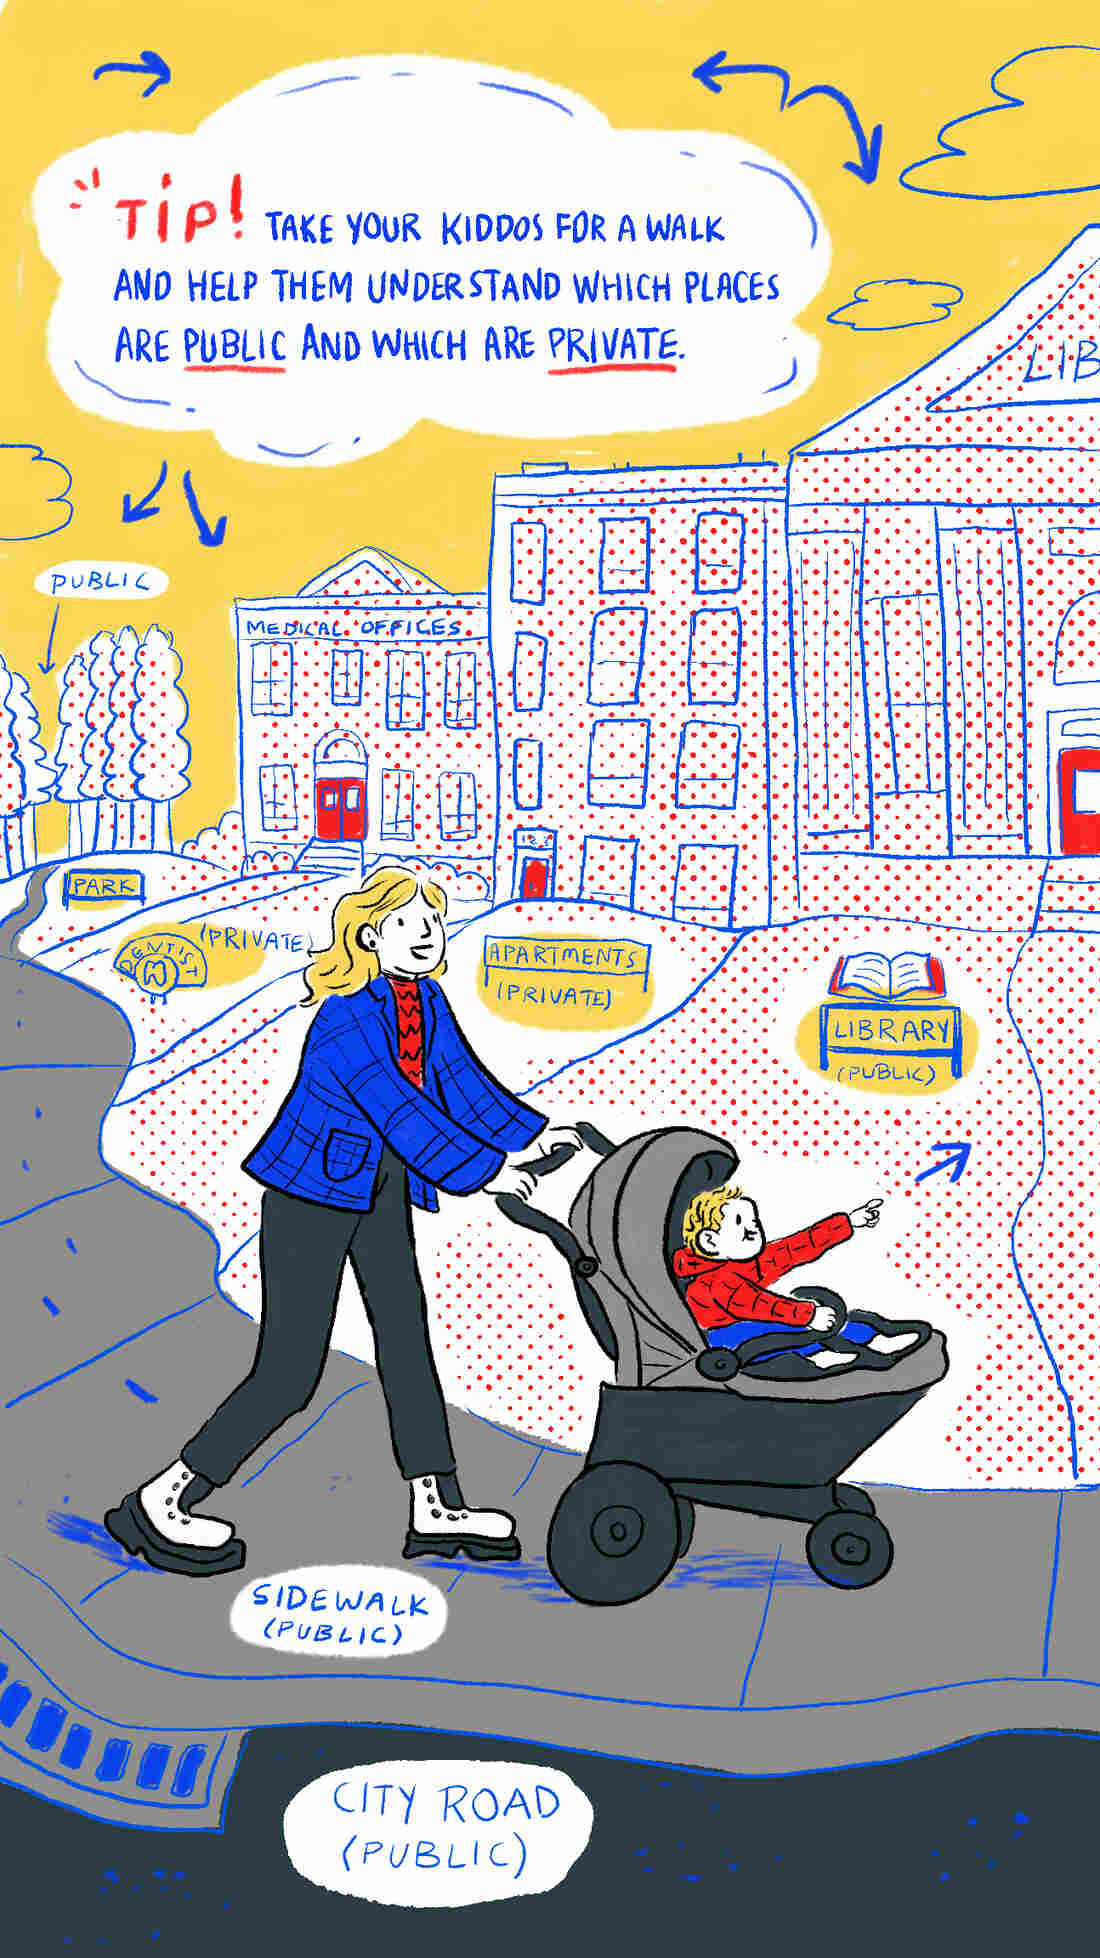 Tip: Take your kids for a walk and help them understand which places are public and which are private.